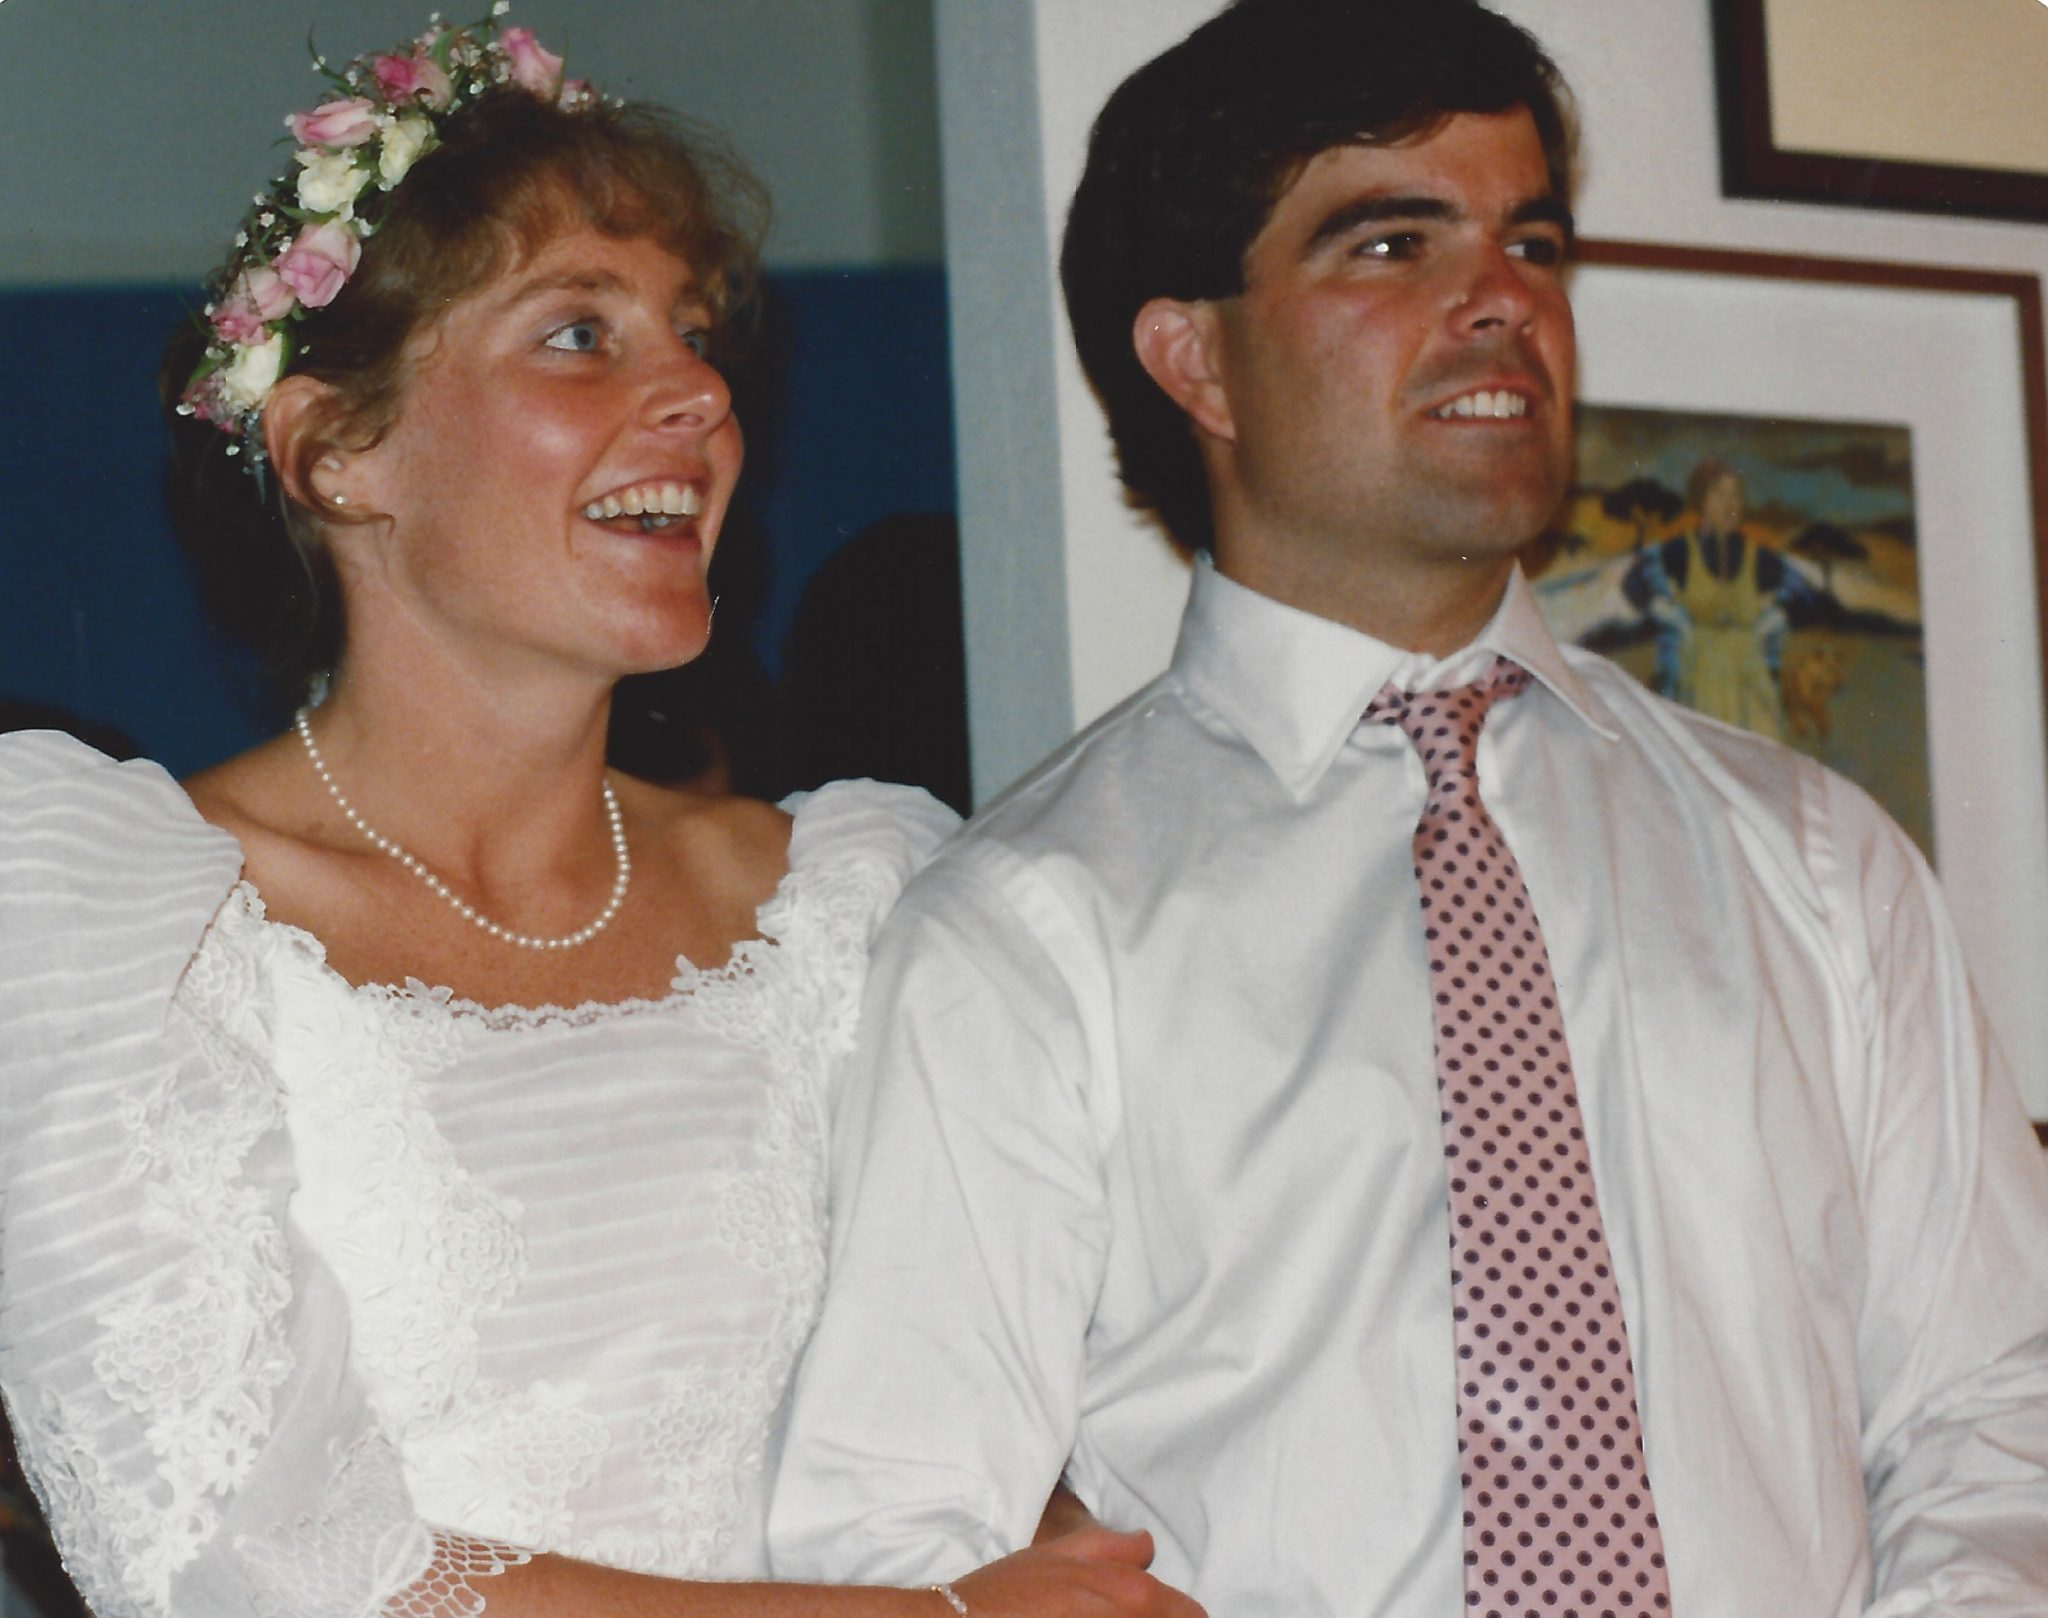 Dan and Margo on their wedding day. Margo is on the left wearing a white gown with pink roses and white flowers in her hair; Dan is wearing a white shirt and pink tie.